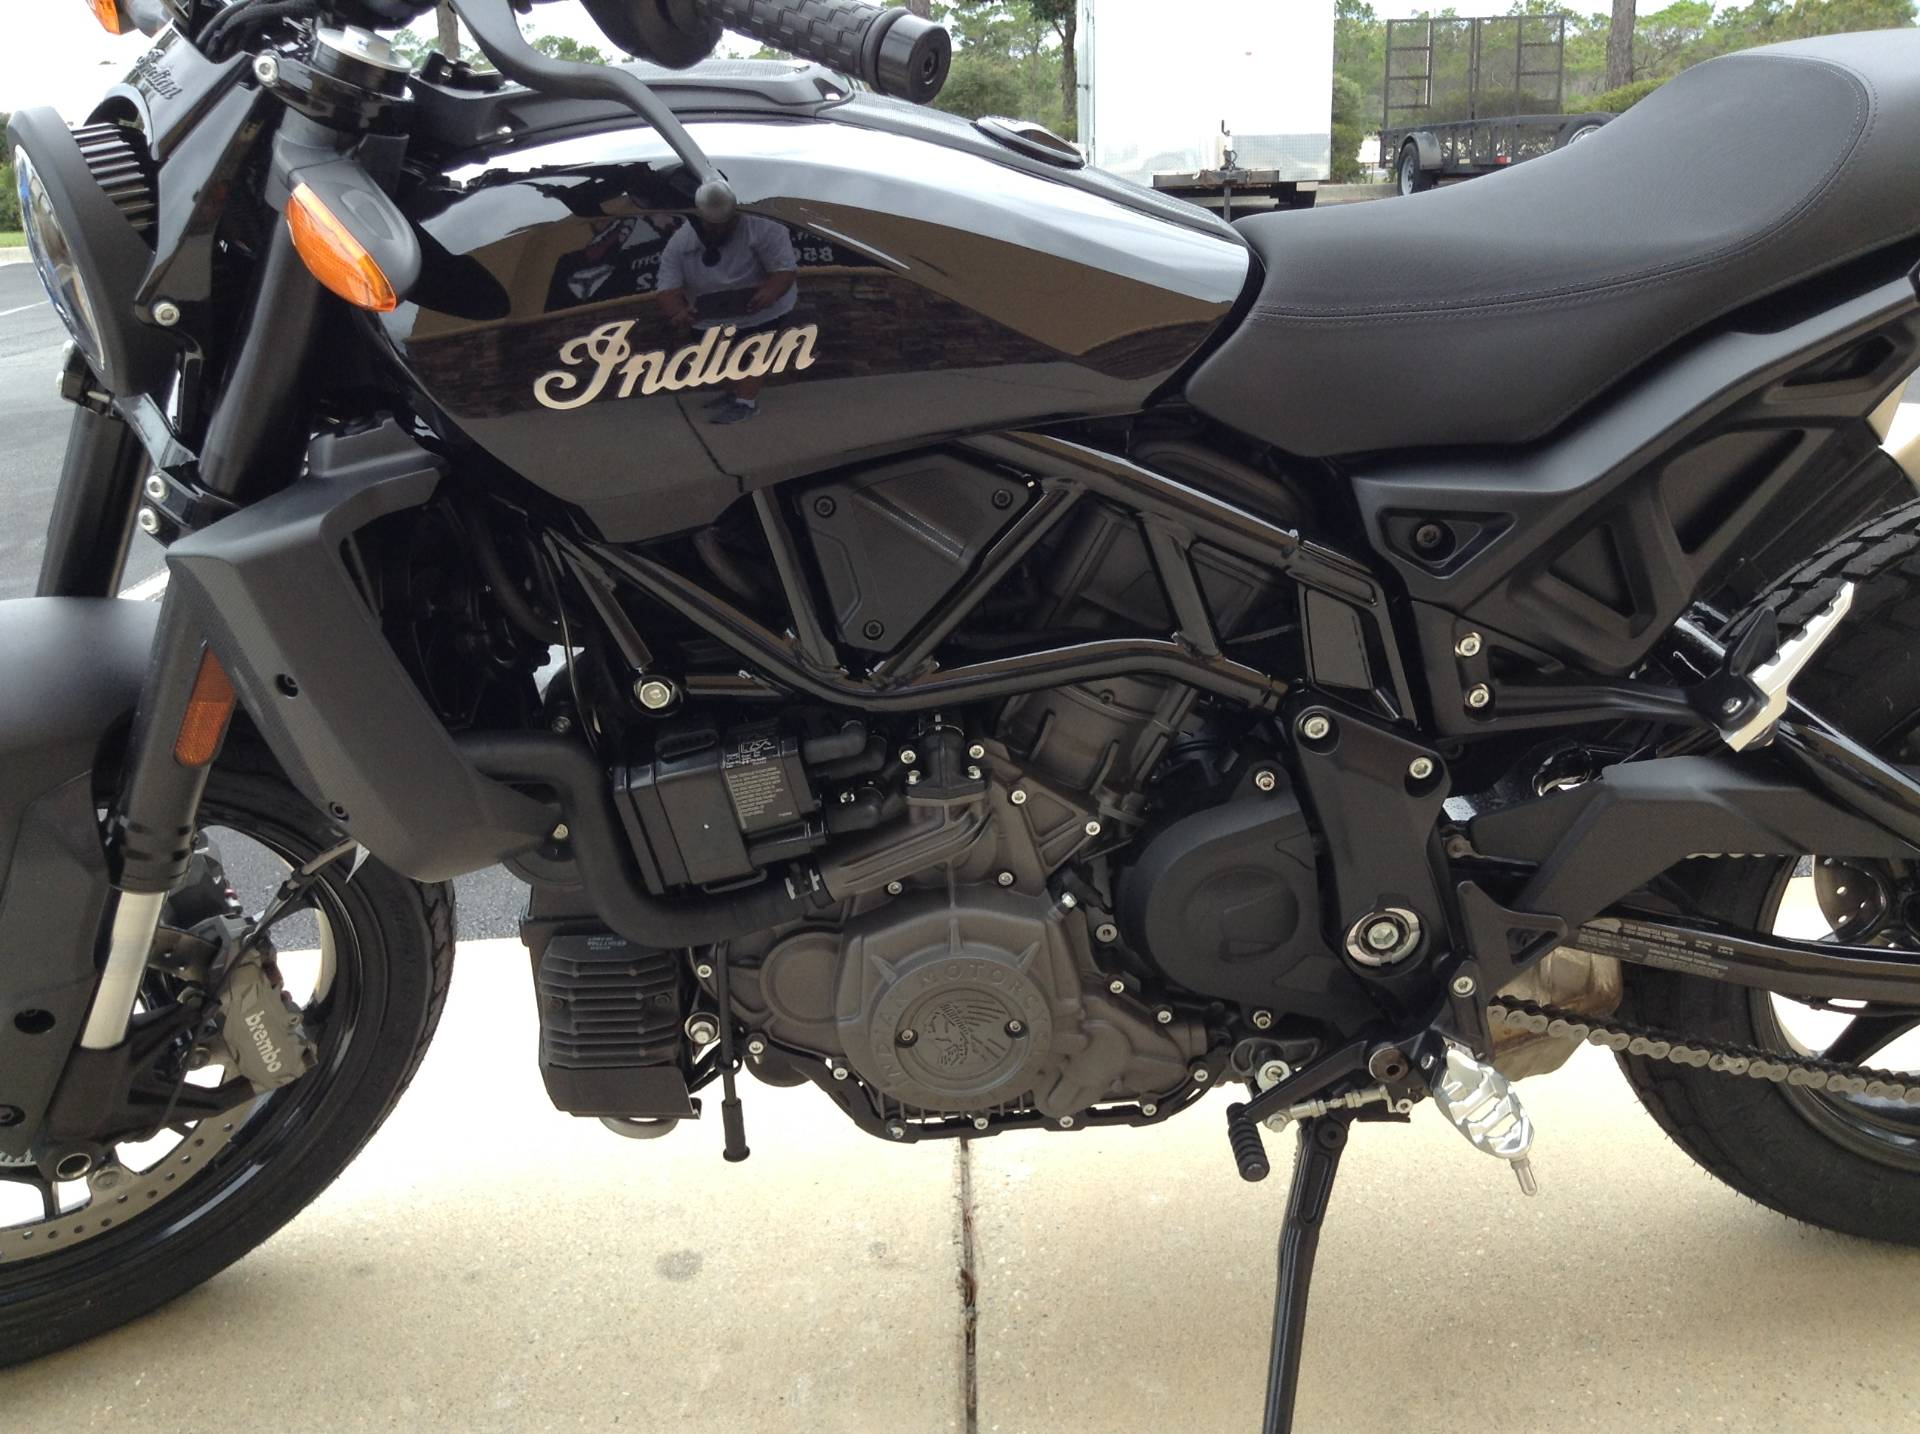 2020 Indian FTR 1200 in Panama City Beach, Florida - Photo 10